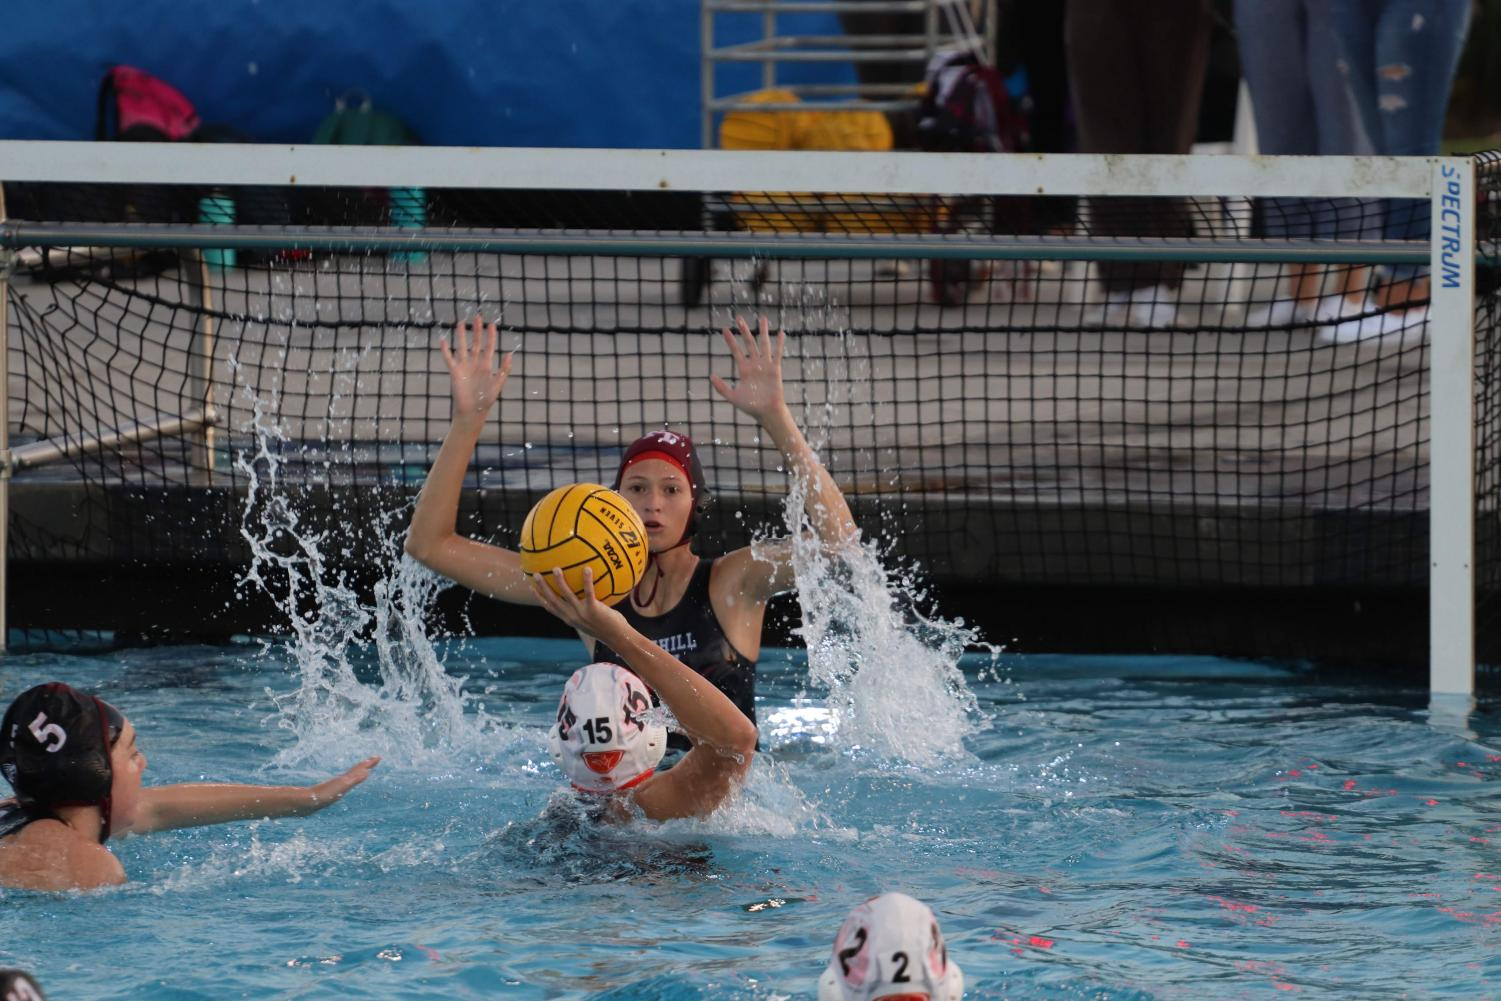 Foothill goalie reaches up to block a close range shot made by Santa Ynez